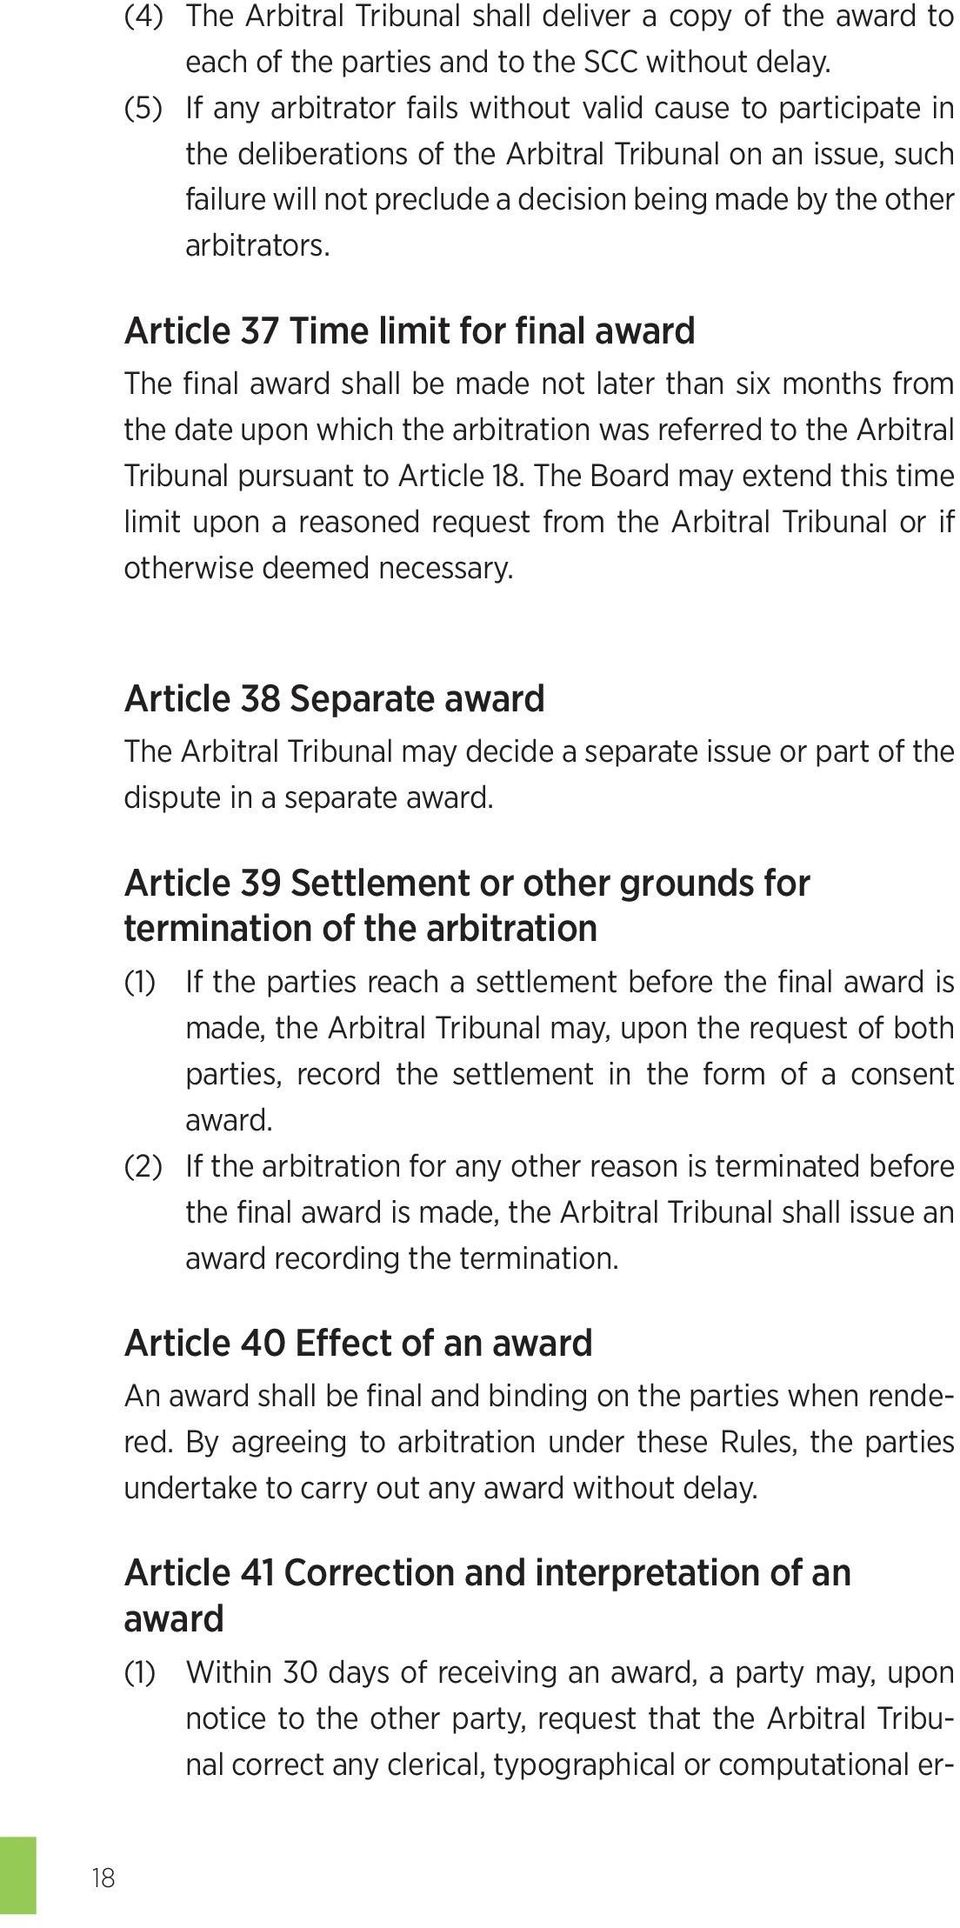 Article 37 Time limit for final award The final award shall be made not later than six months from the date upon which the arbitration was referred to the Arbitral Tribunal pursuant to Article 18.